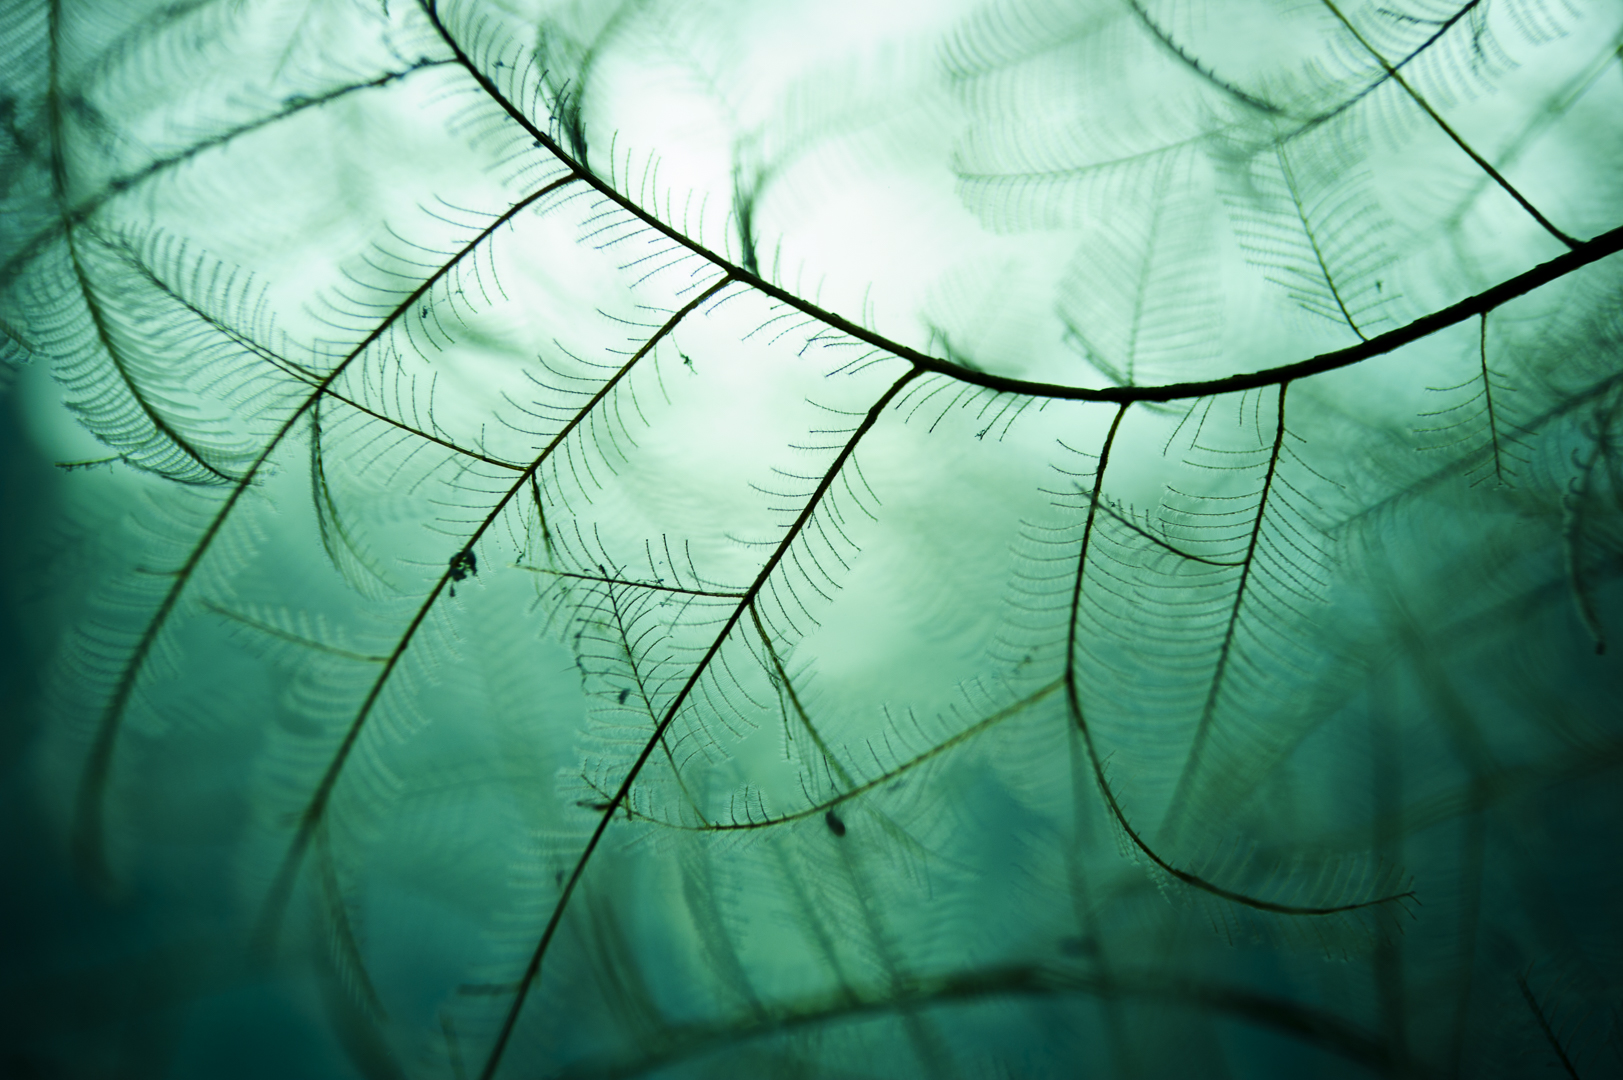 Some animals are so delicate that they almost exhibit a featherlike structure. The branches of hydroids create a mesmerizing pattern, able to filter out bacterial plankton from the waters.